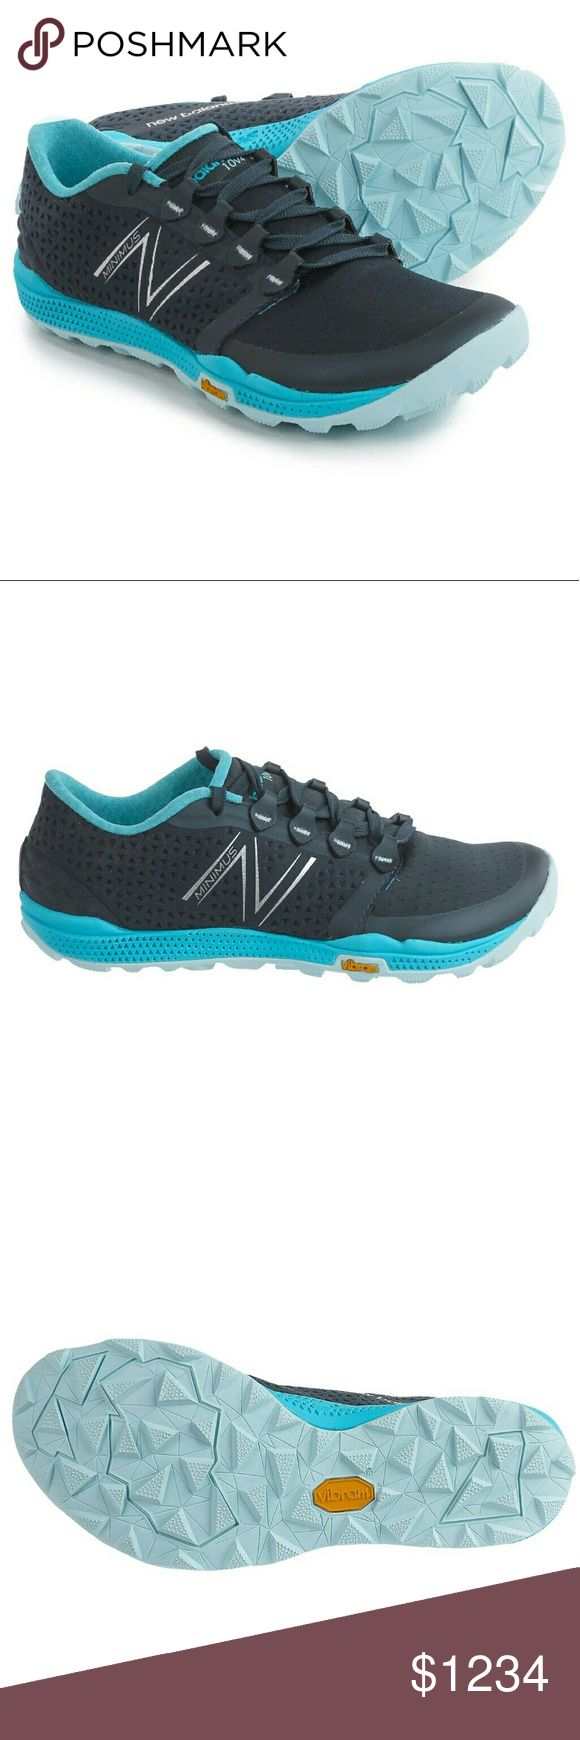 """Coming Soon! New Balance Minimus Size 7.5 New Balance Minimus trail running shoe! Waiting to be posted Like this listing to be notified via email """"price drop"""" when listing gets uodated New Balance Shoes Sneakers"""